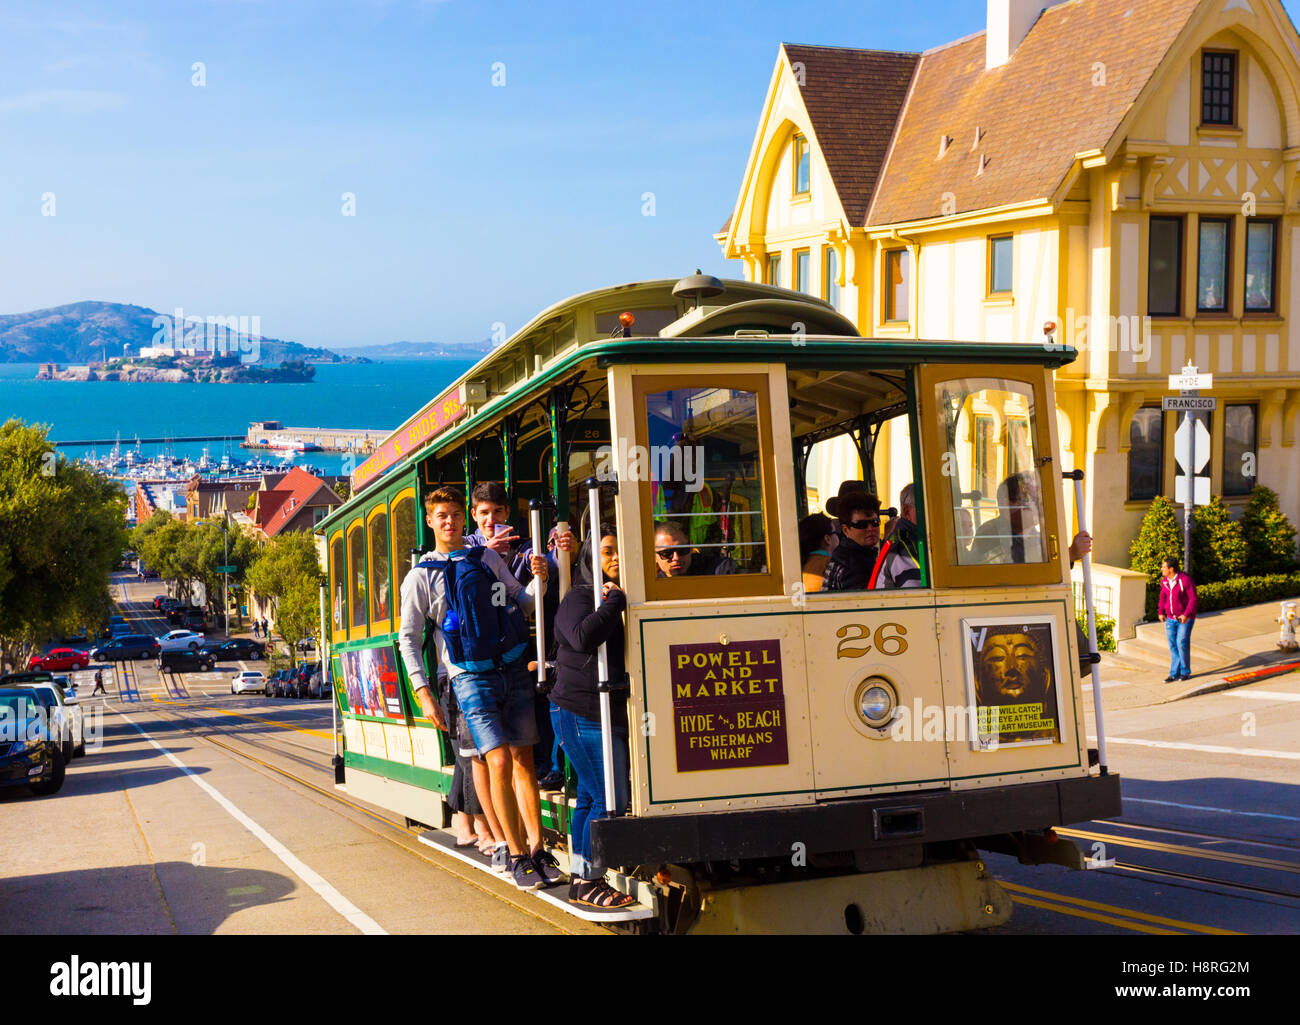 Closeup of approaching Hyde Street cable car full of people standing on outside platform enjoying steep hill ride - Stock Image